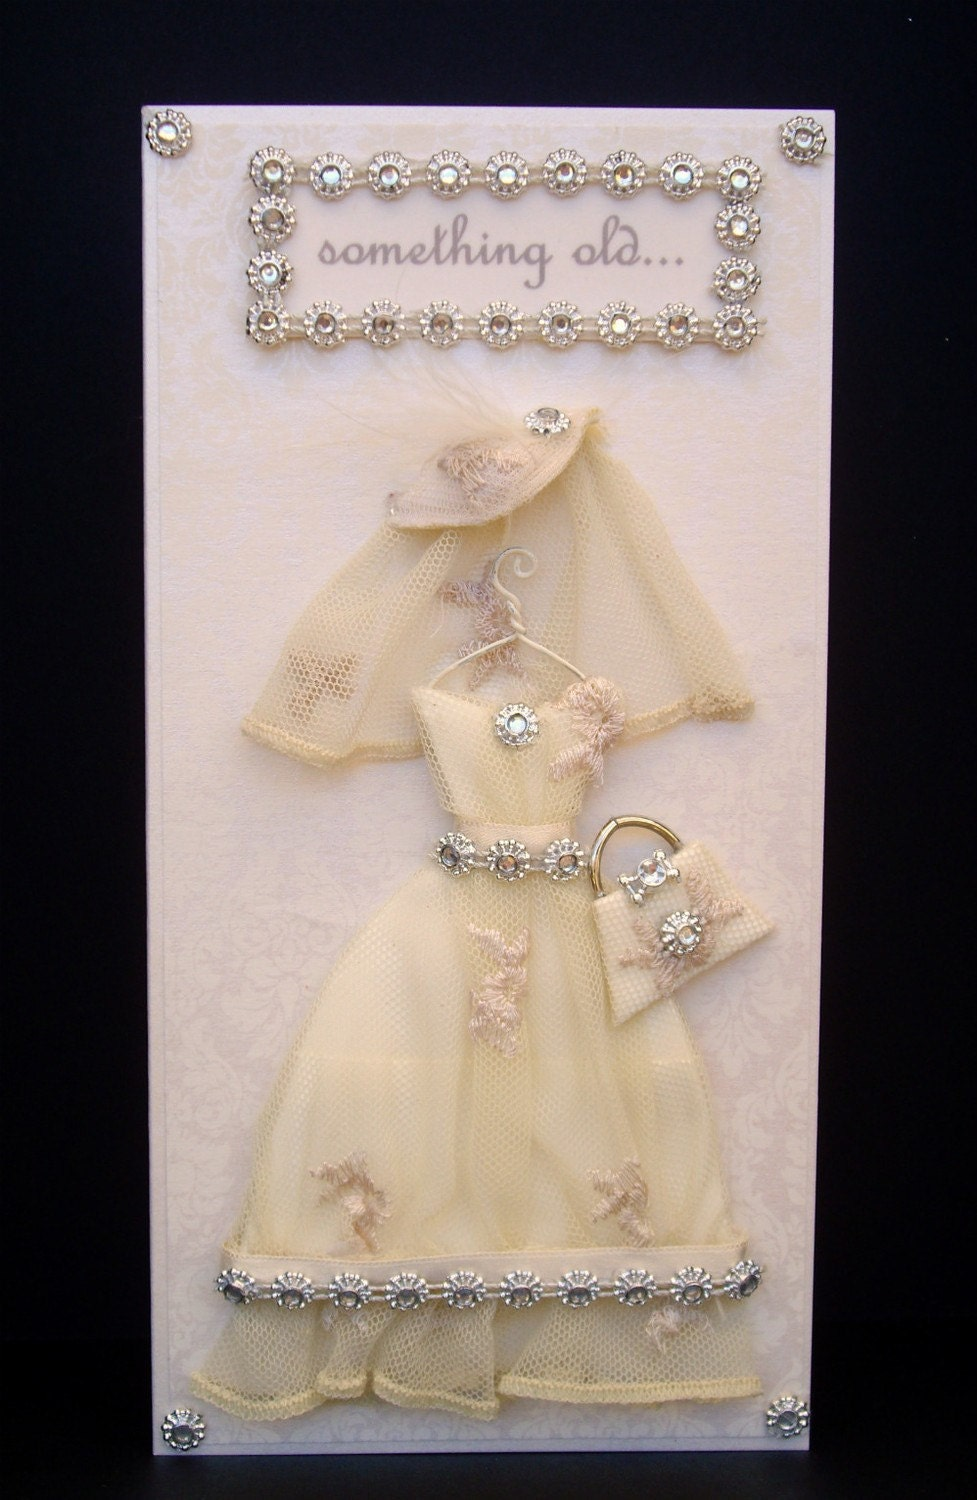 Something old... Card / Wedding Dress Card Collection / Handmade Greeting Card